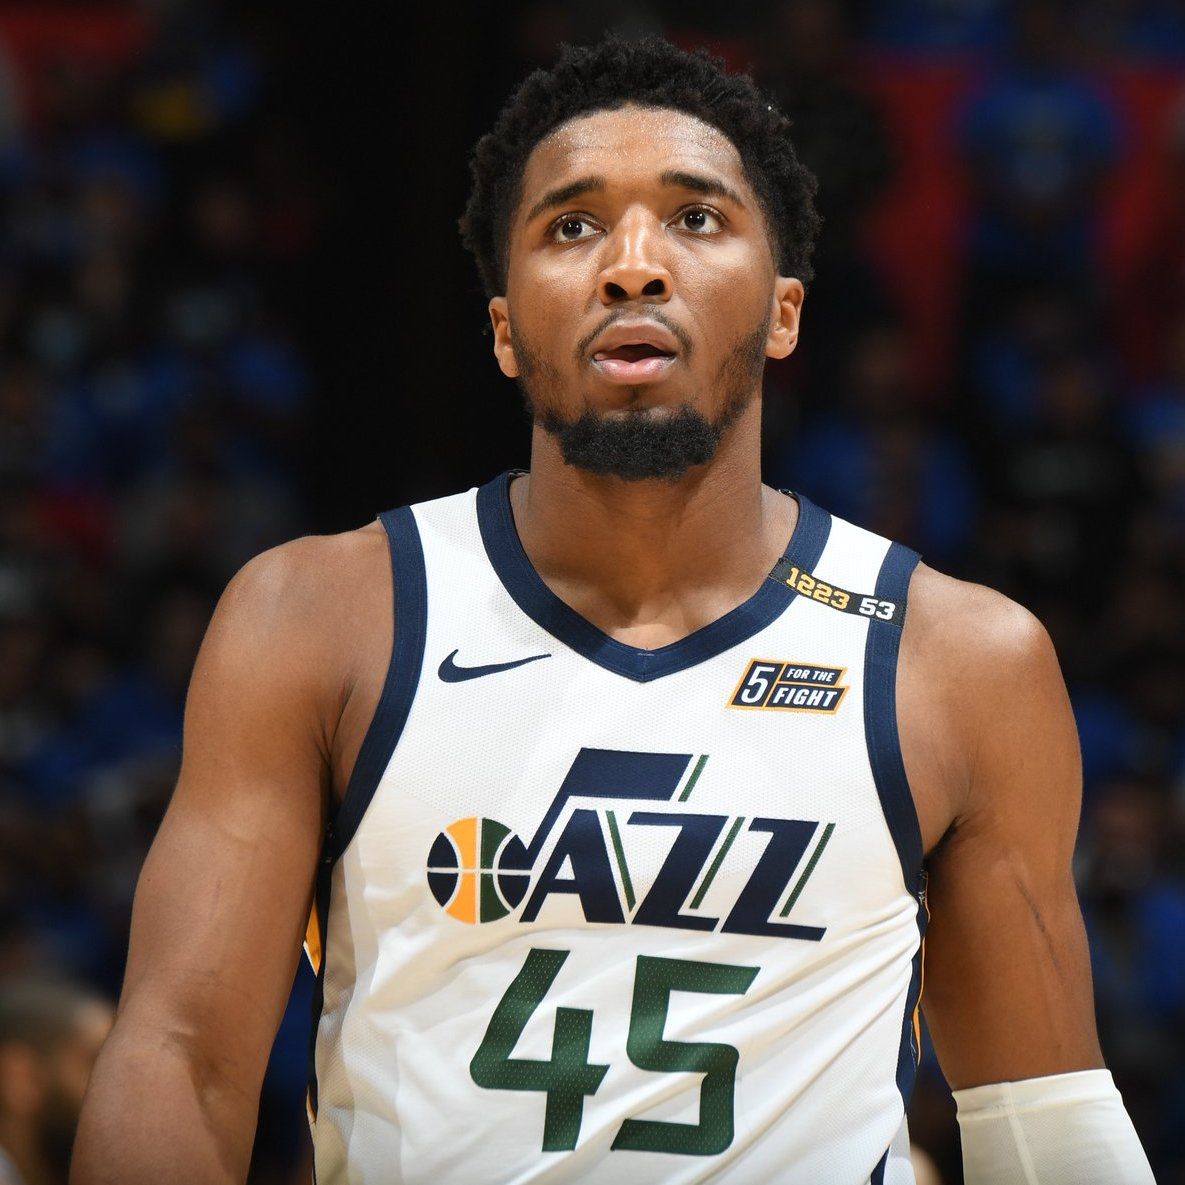 An incredible run of playoff performances from Donovan Mitchell comes to an end.  His final stat line of the season ⬇️  39 PTS  9 REB 9 AST 64.3 FPTS https://t.co/yUdPN9tTfm